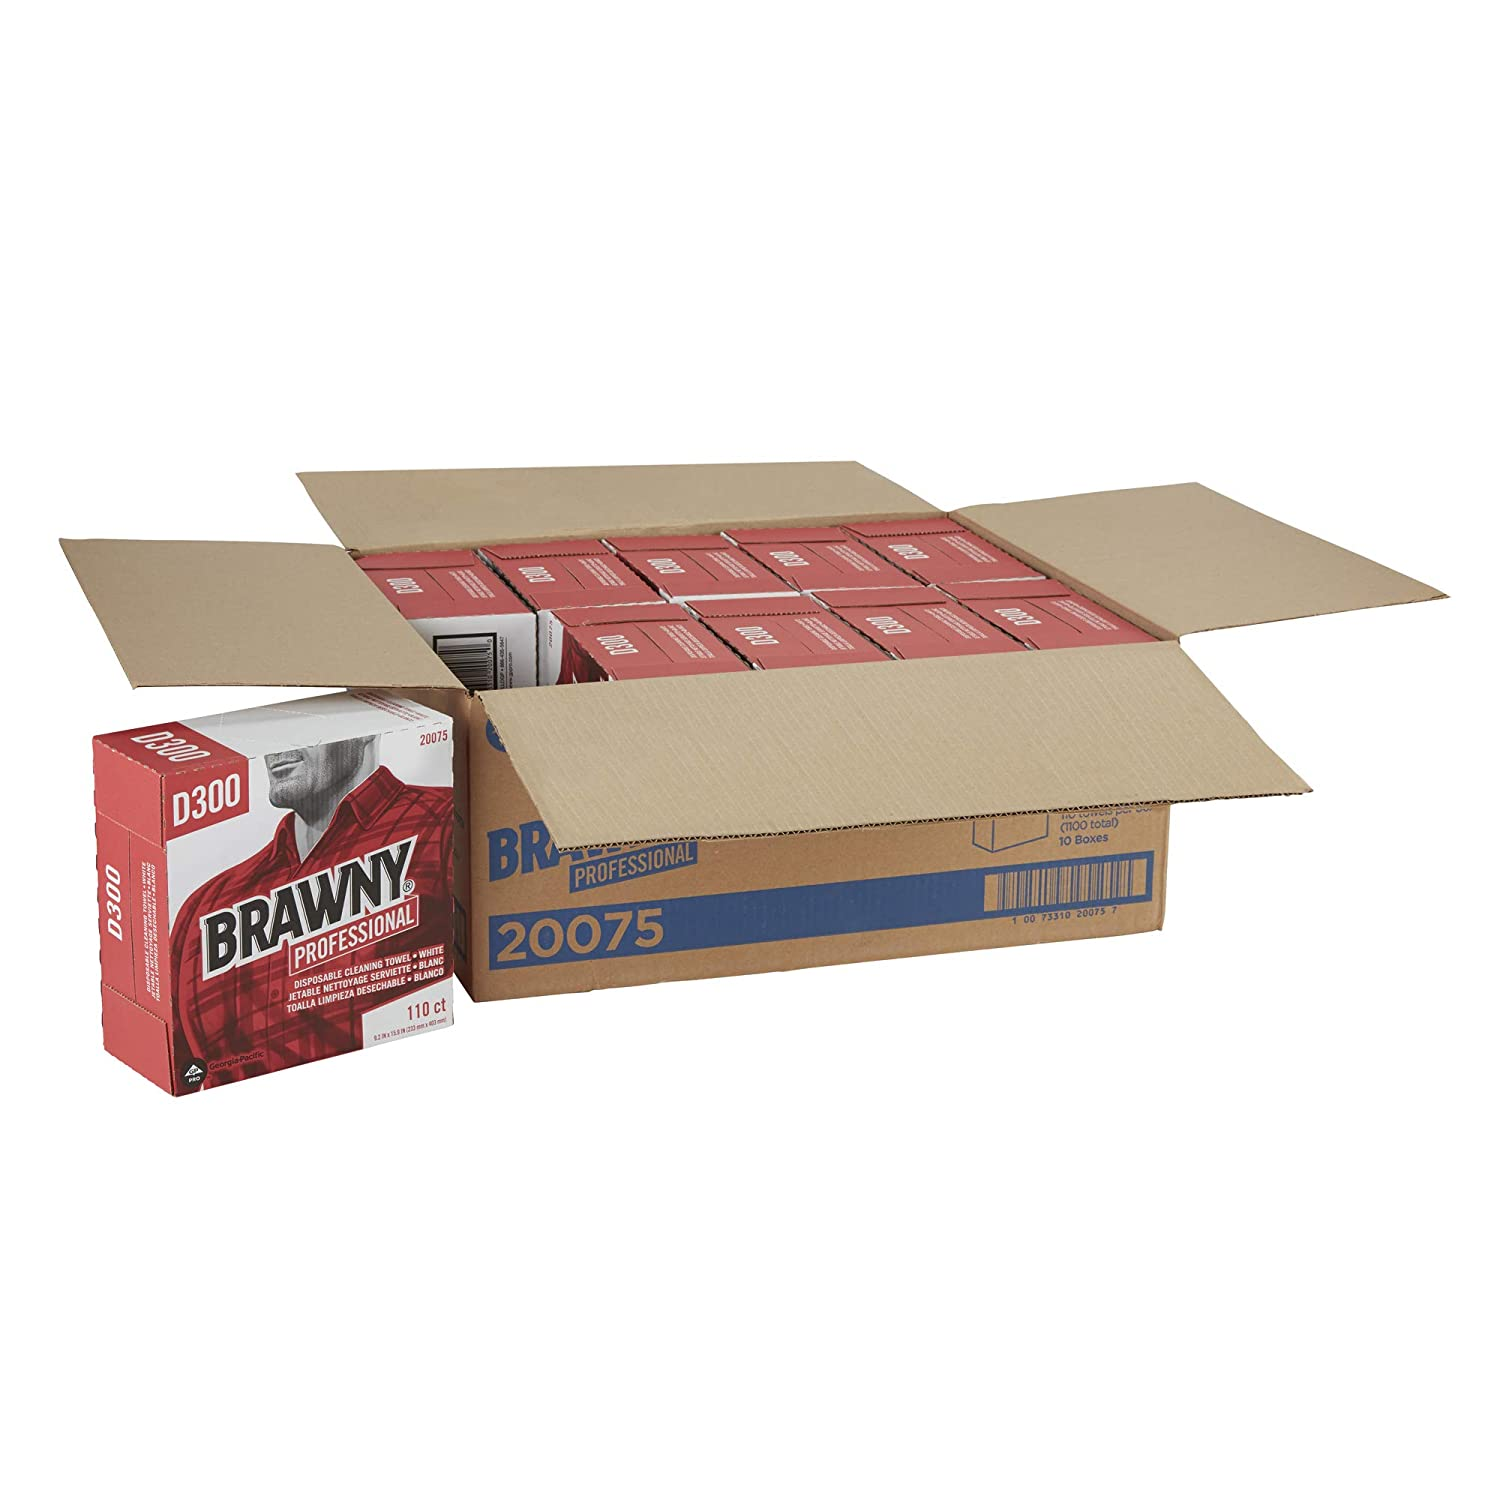 Brawny Professional D300 Disposable Cleaning Towel by GP PRO (Georgia-Pacific), 20075, Tall Box, White, 110 Towels Per Box, 10 Boxes Per Case: Science Lab ...